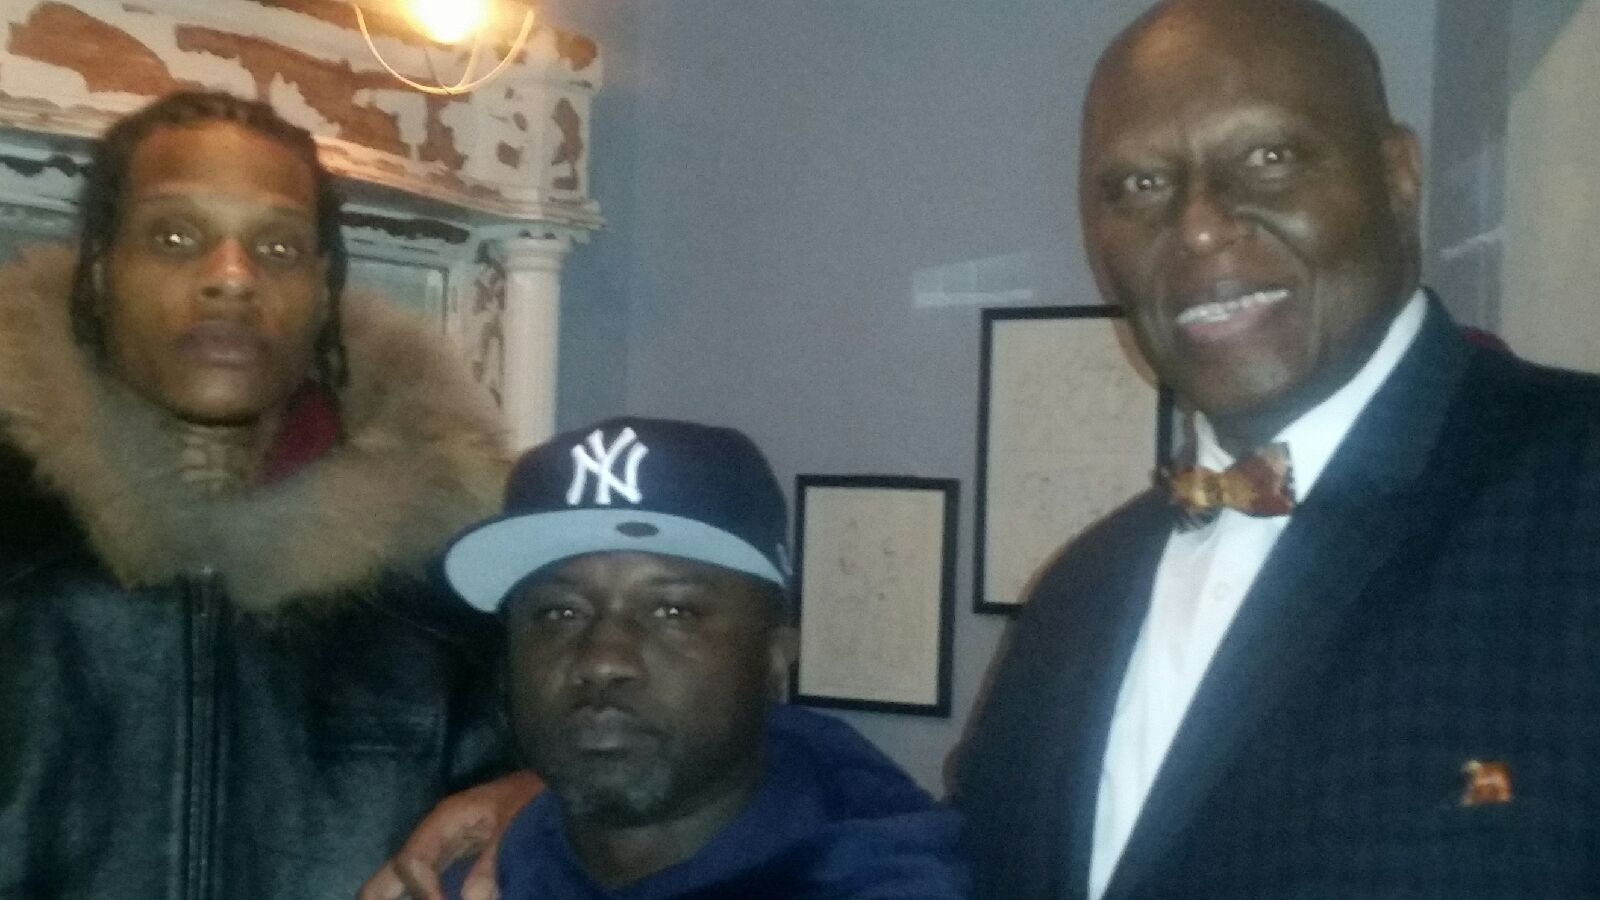 Brother Student Minister Abdullah Muhammad with his son Jaleel aka CutThroat Maniac and Havoc of Mobb Deep